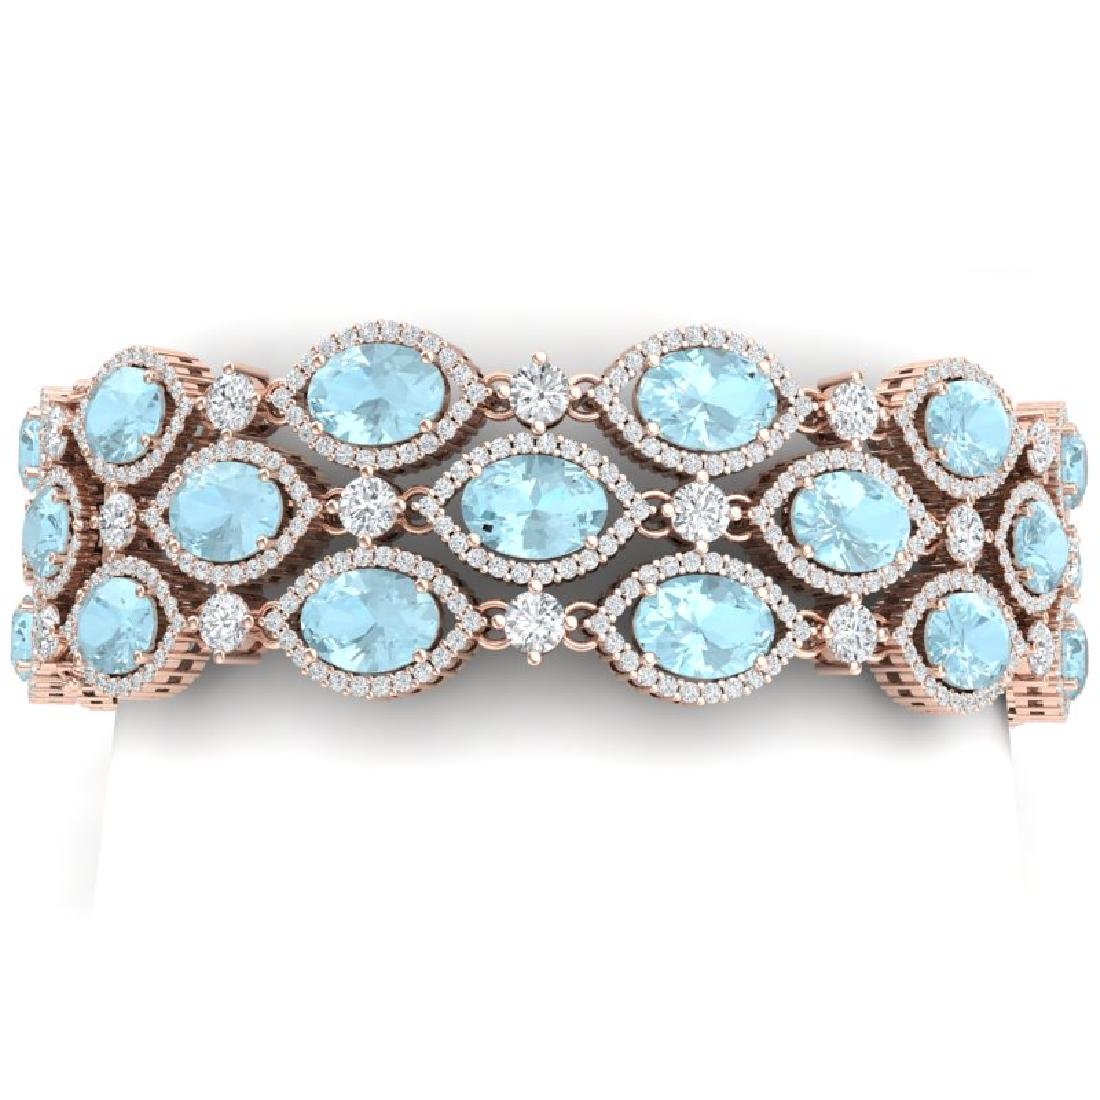 45.84 CTW Royalty Sky Topaz & VS Diamond Bracelet 18K